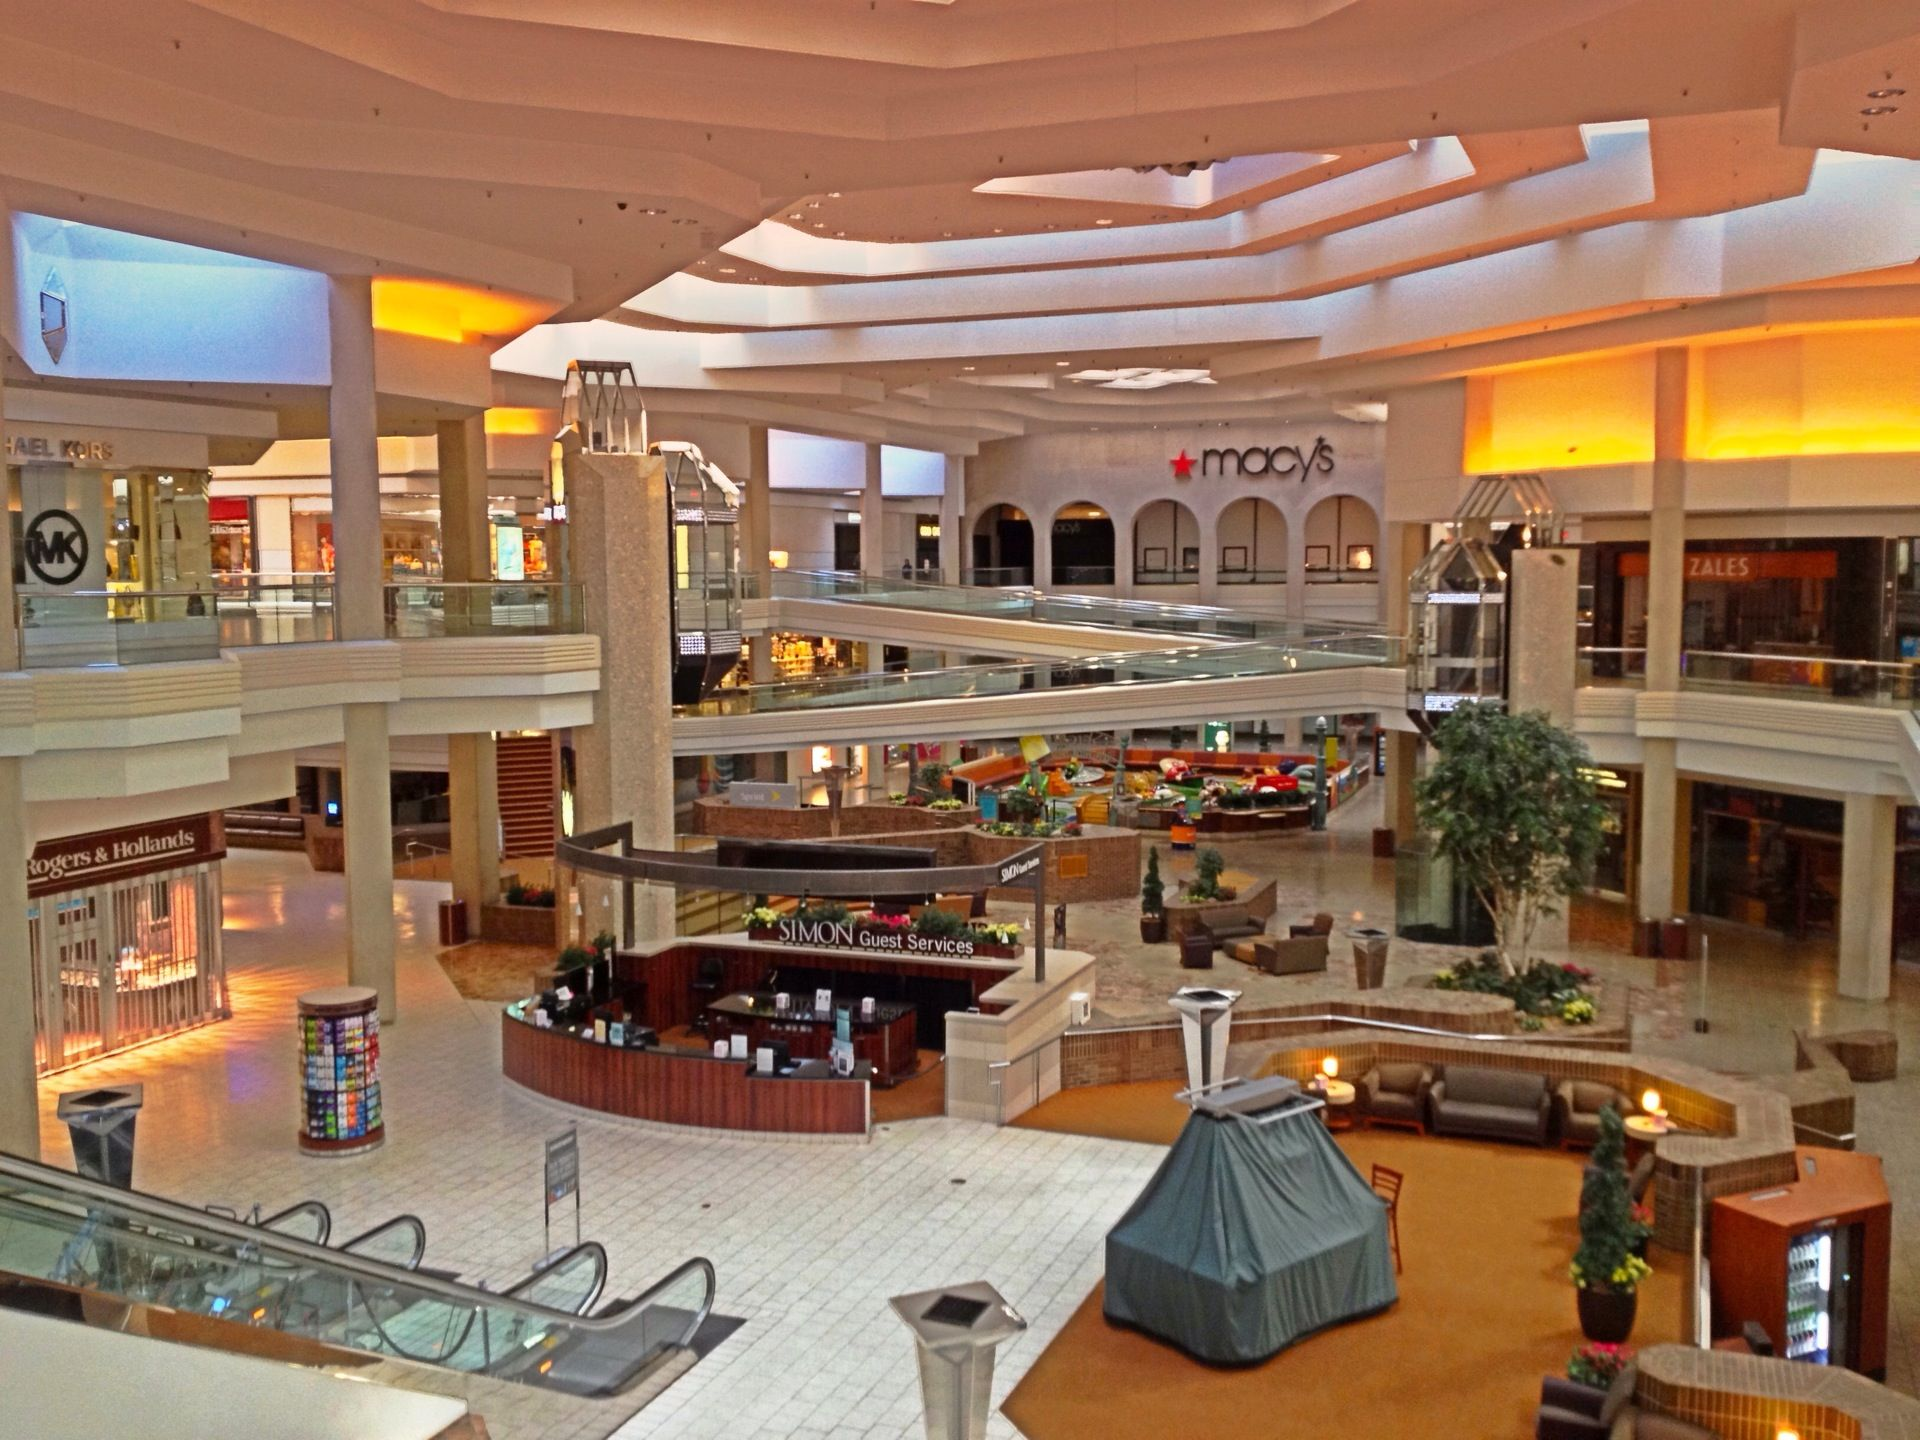 woodfield mall in schaumburg il places to visit in illinois in 2019 mall mall stores dead. Black Bedroom Furniture Sets. Home Design Ideas